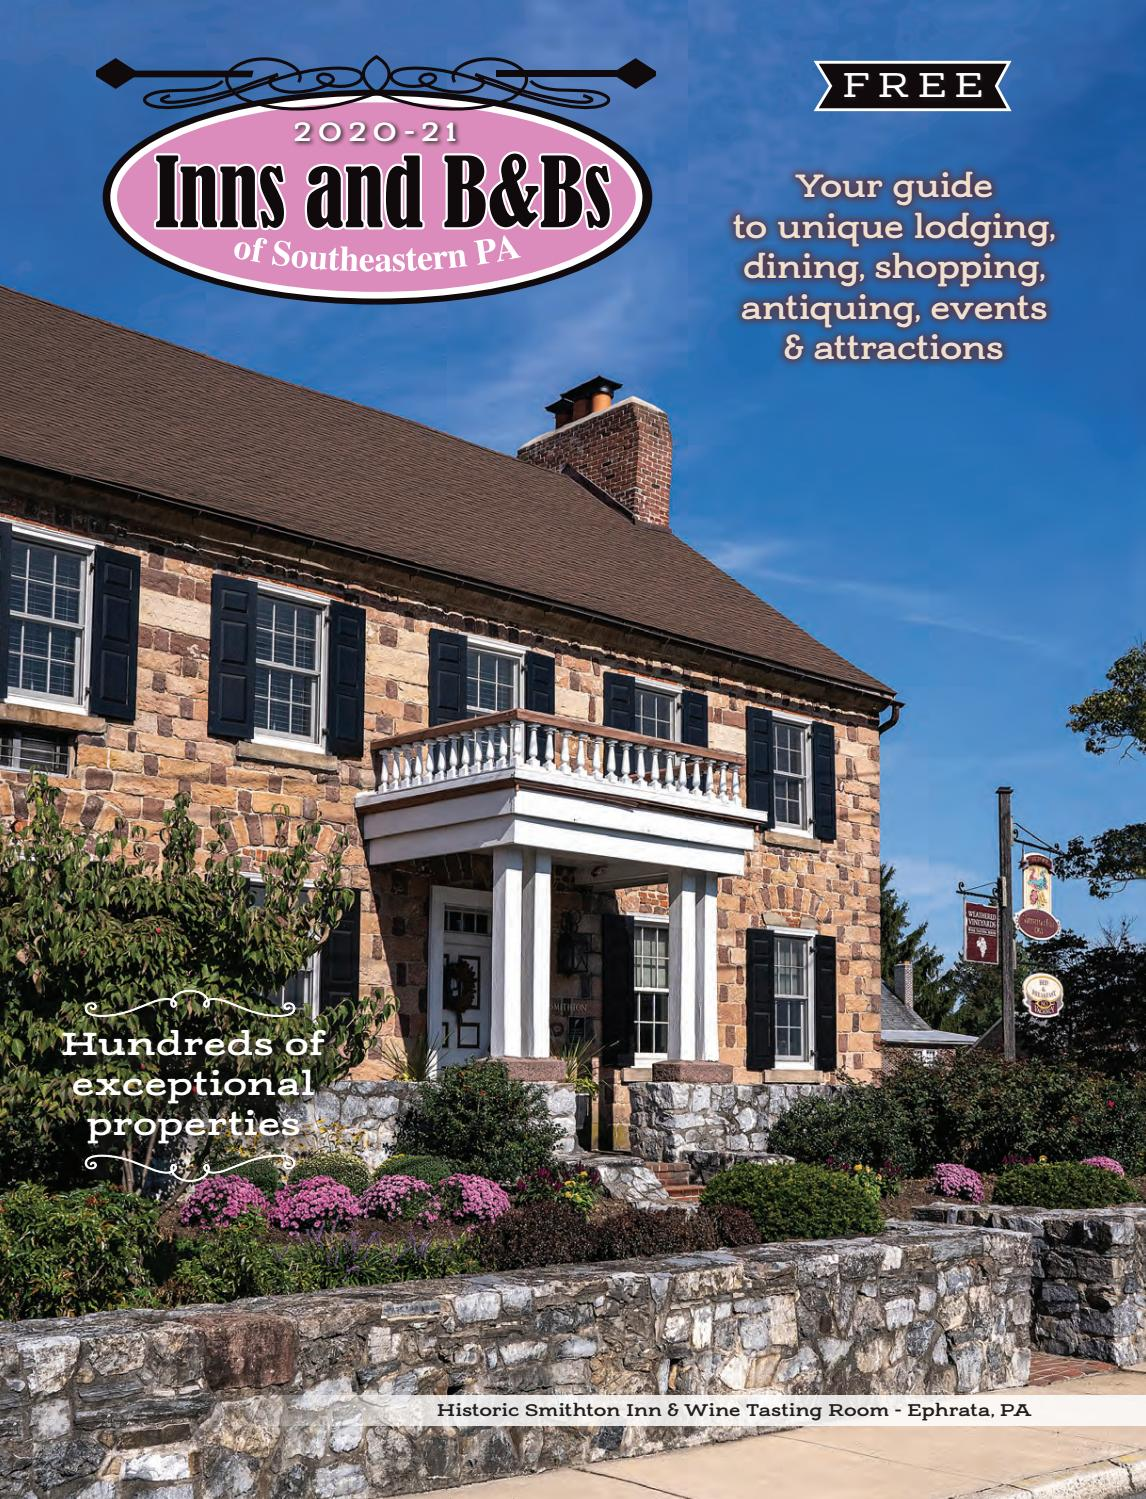 Inns and B&Bs of Southeastern PA 2020 2021 by Engle Printing